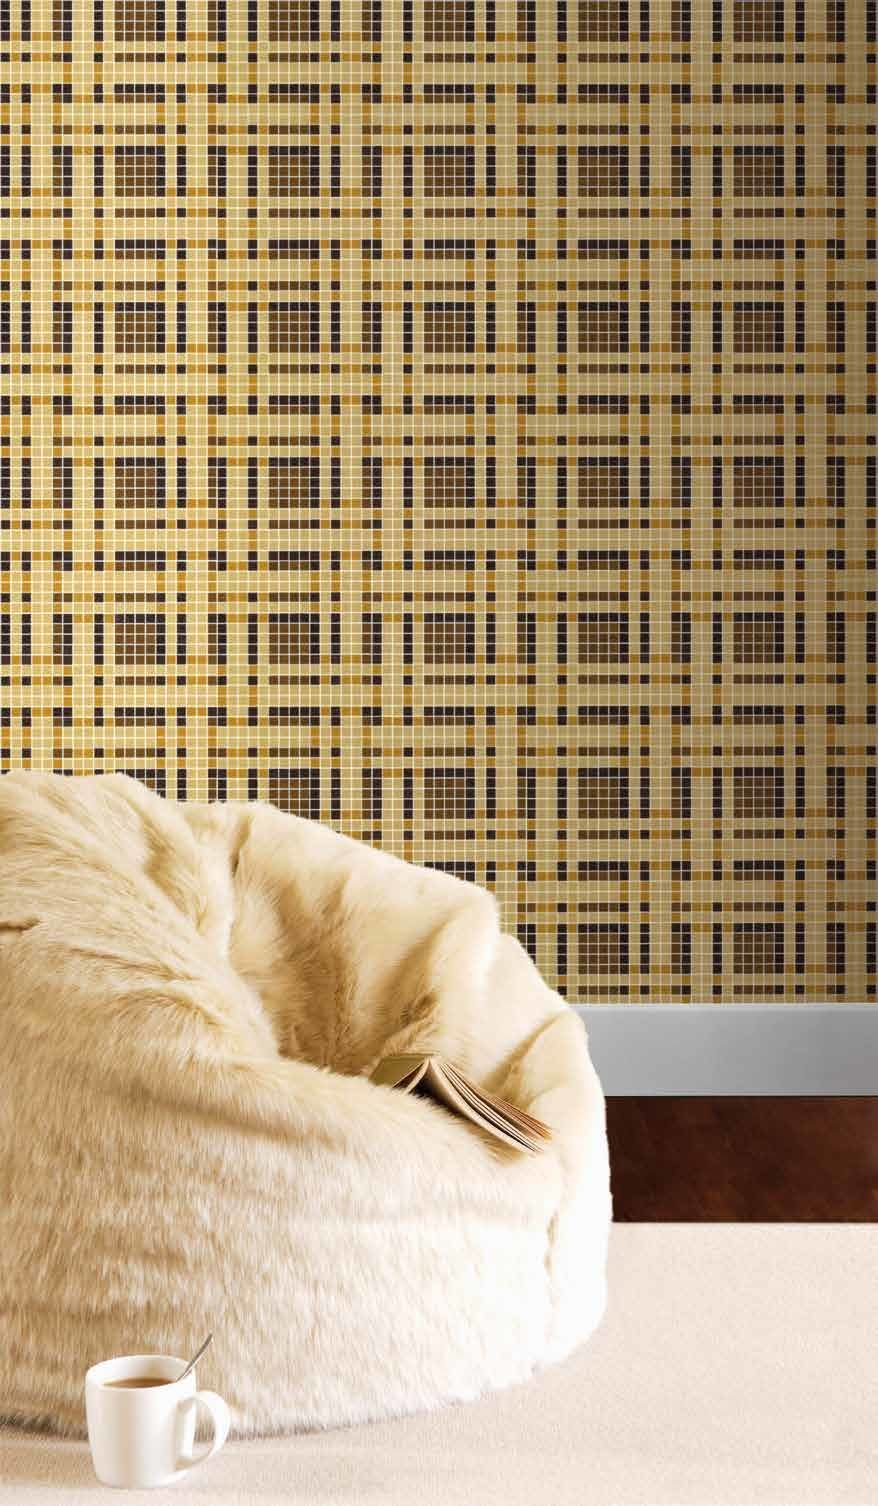 Bisazza Decori 20 Gate Brown